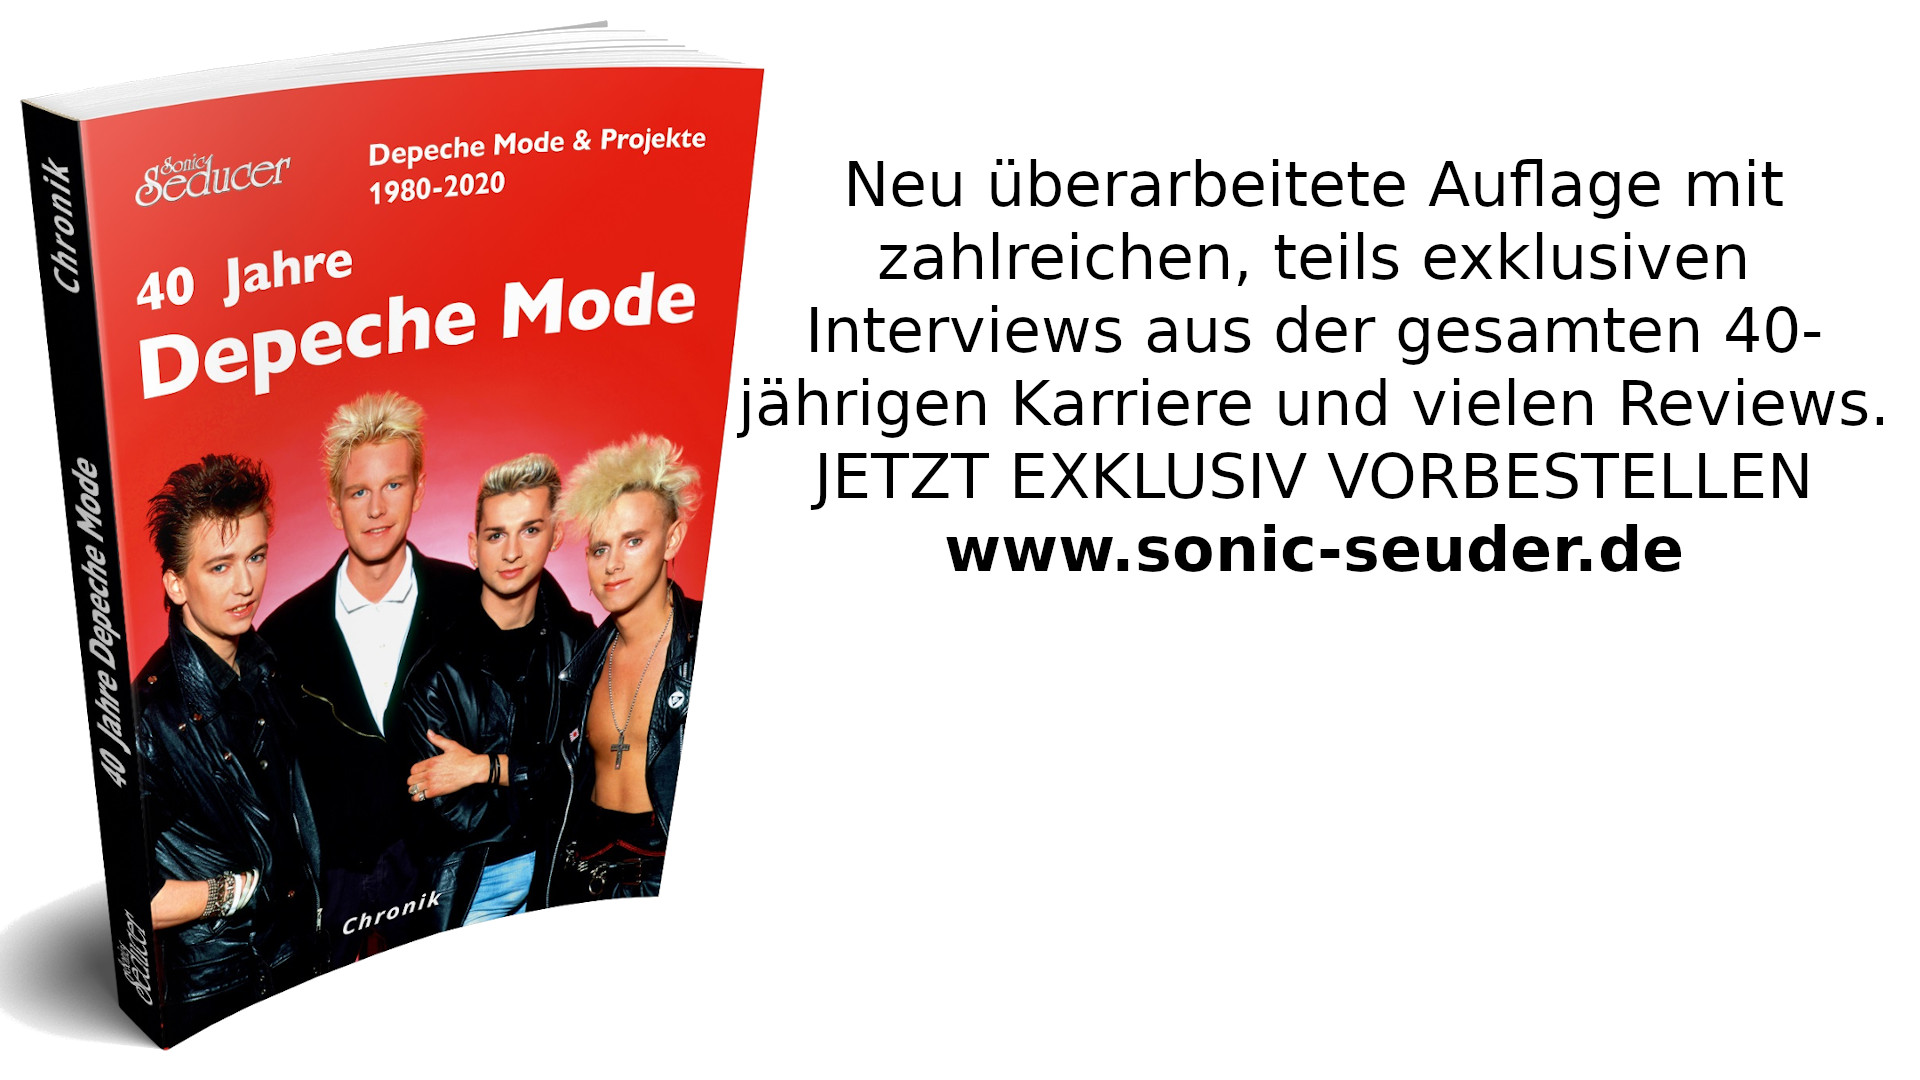 depeche mode chronik neue infos homepage